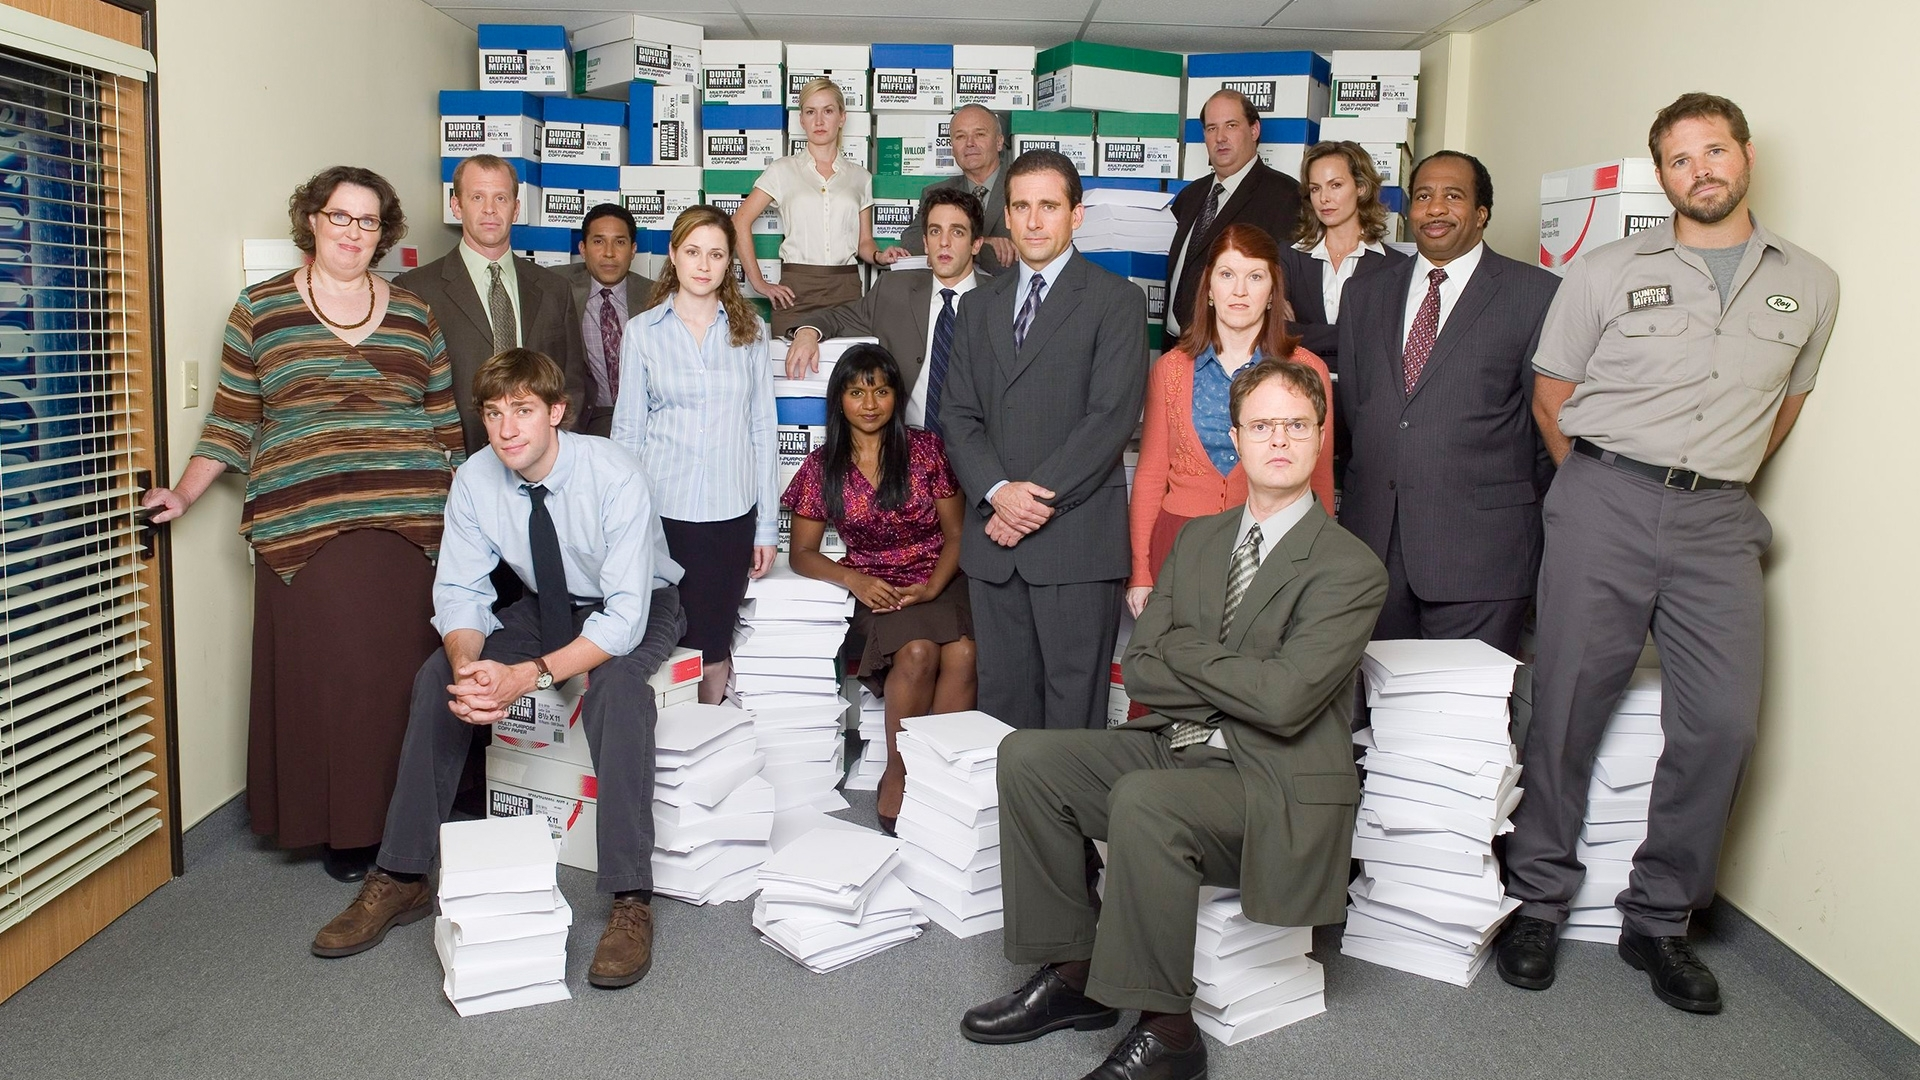 the office (us) full hd fond d'écran and arrière-plan | 1920x1080